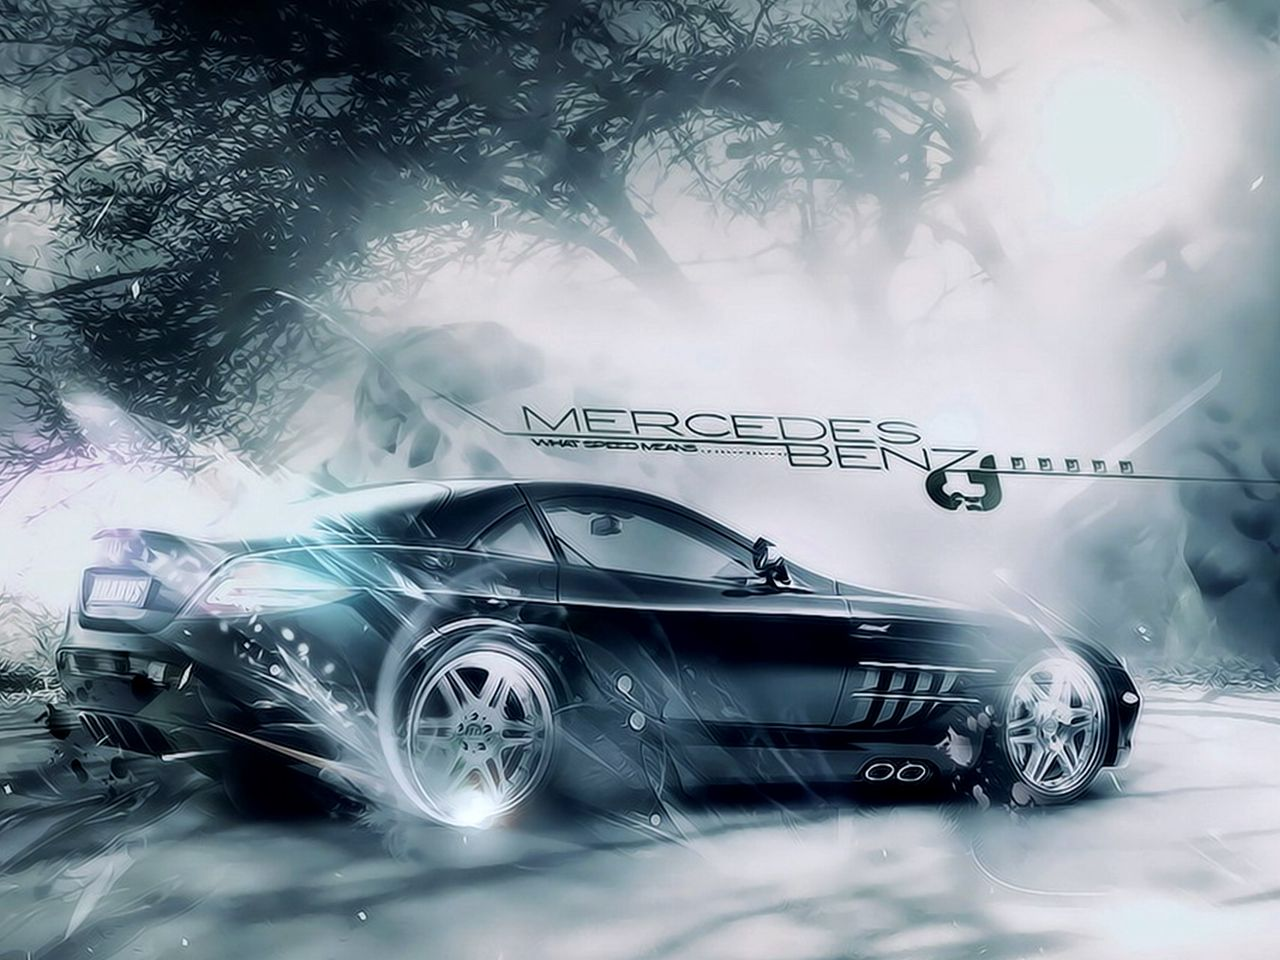 Hd Wallpapers Cars Free Download Wallpapersafari